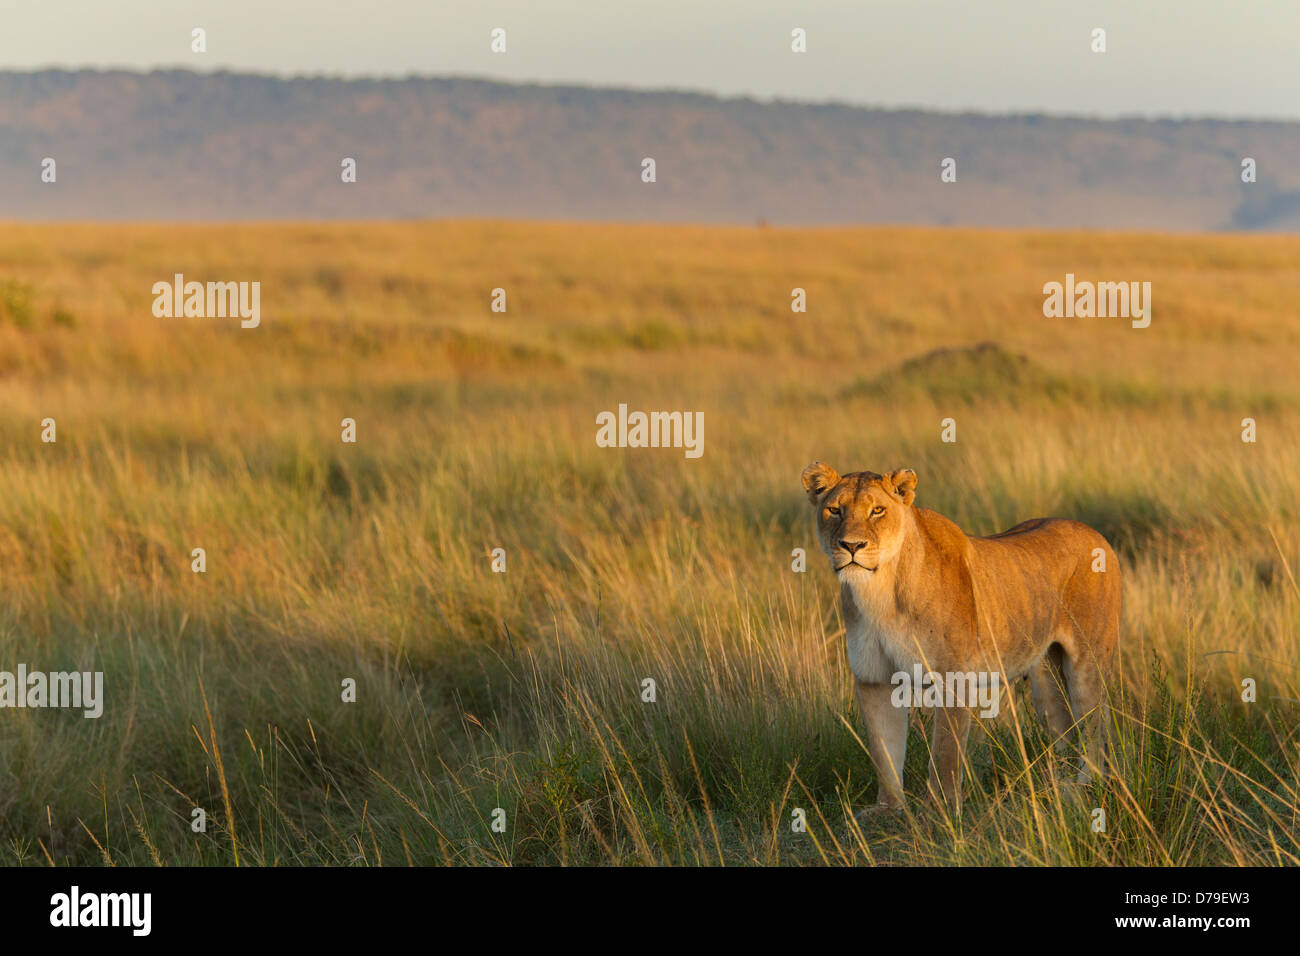 Lioness looking for prey in early morning light - Stock Image